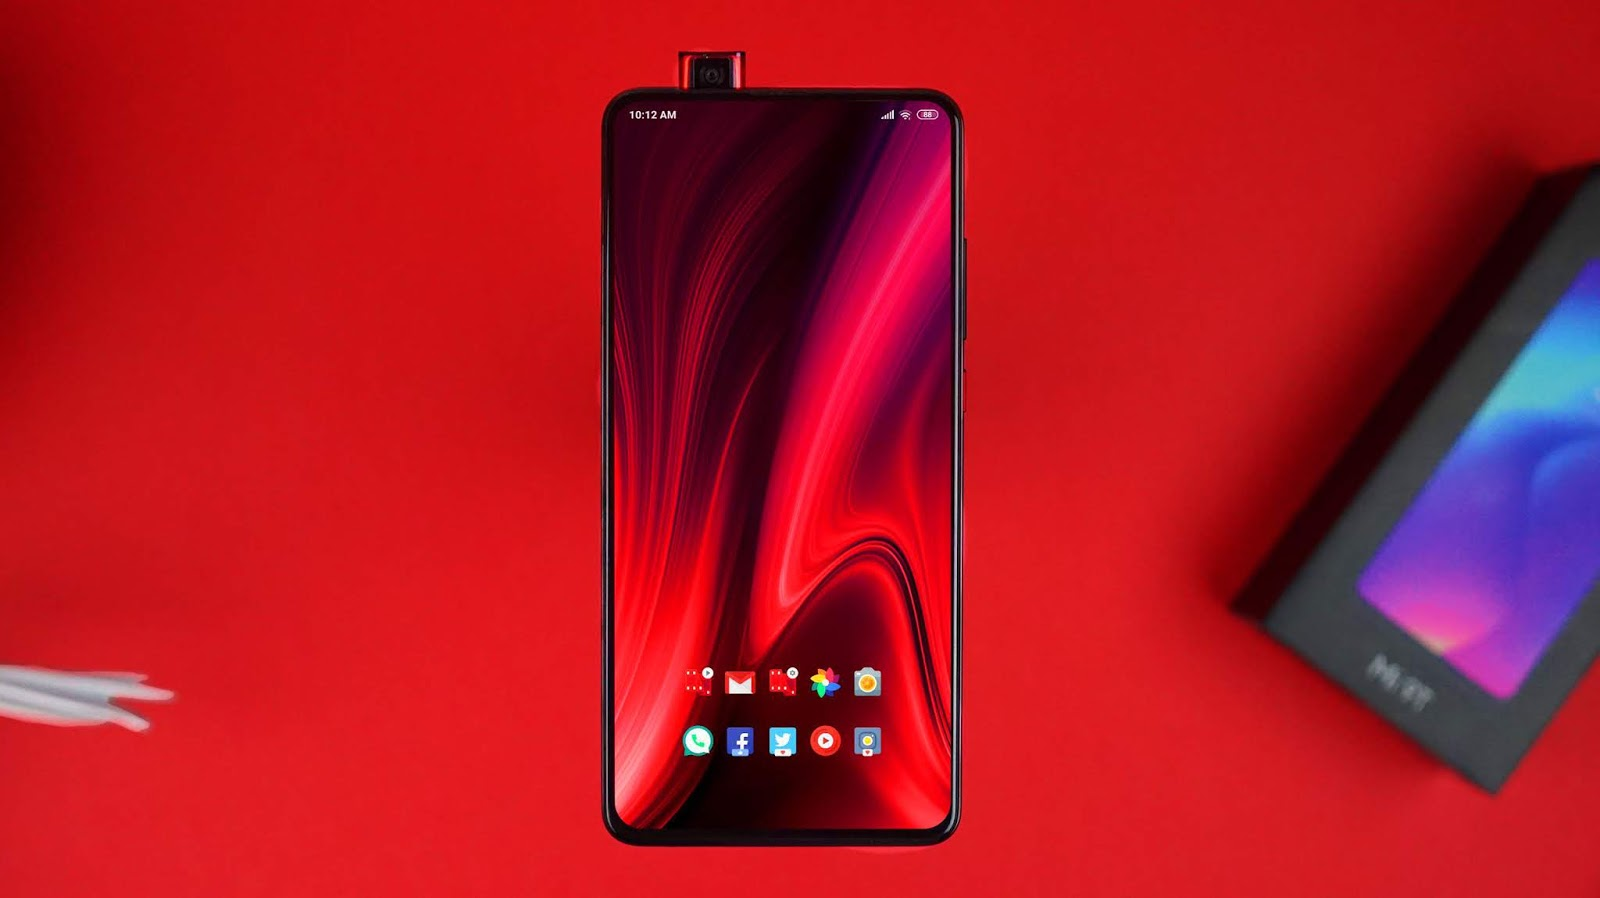 Wallpapers Agosto Xiaomi Mi 9t Galaxy A80 Galaxy